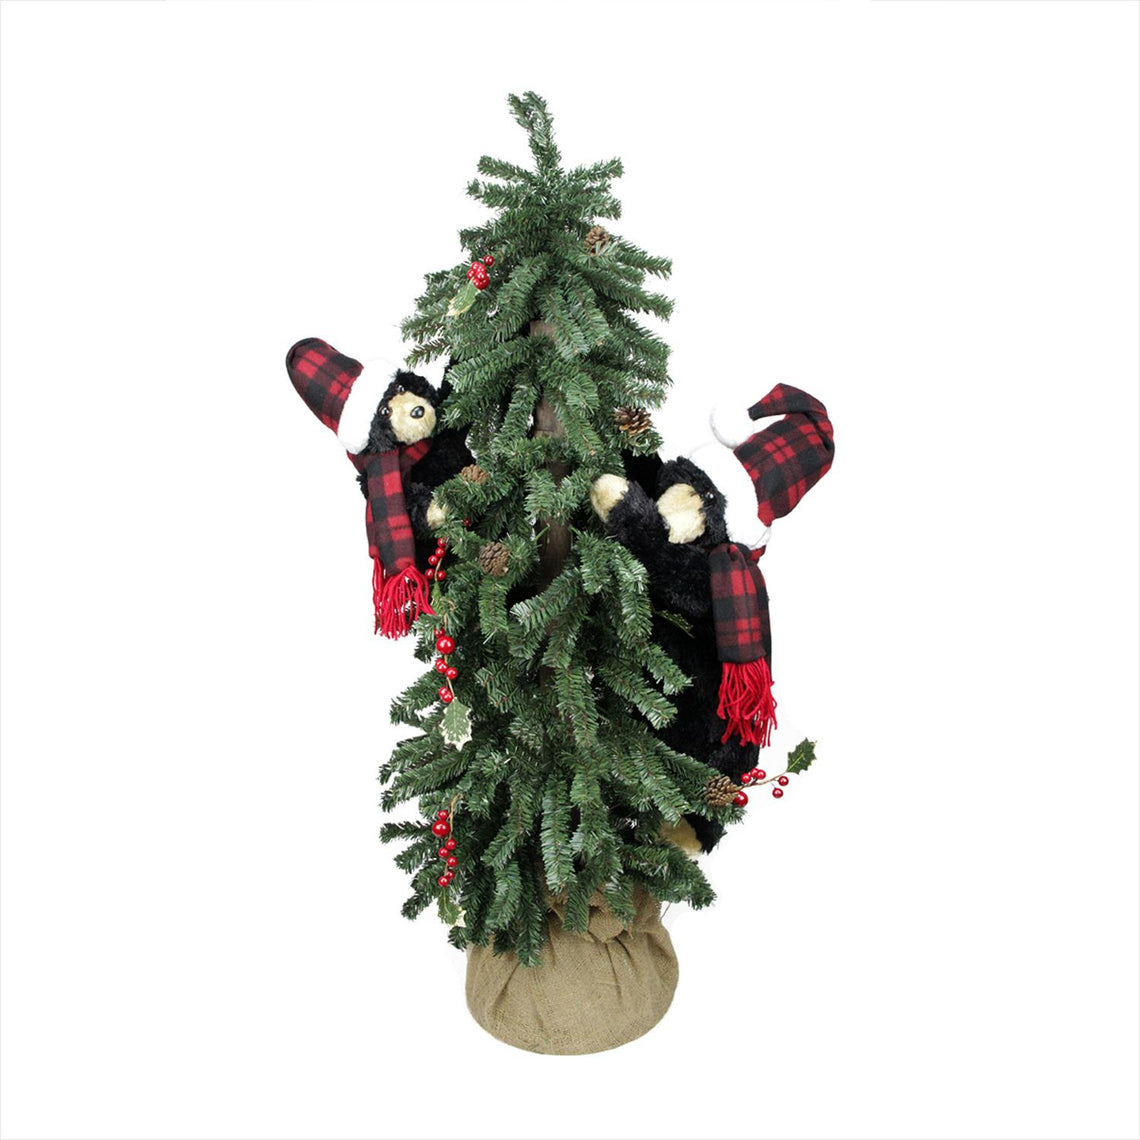 4' Country Rustic Artificial Alpine Christmas Tree in Burlap Sack with Black Bears - Unlit